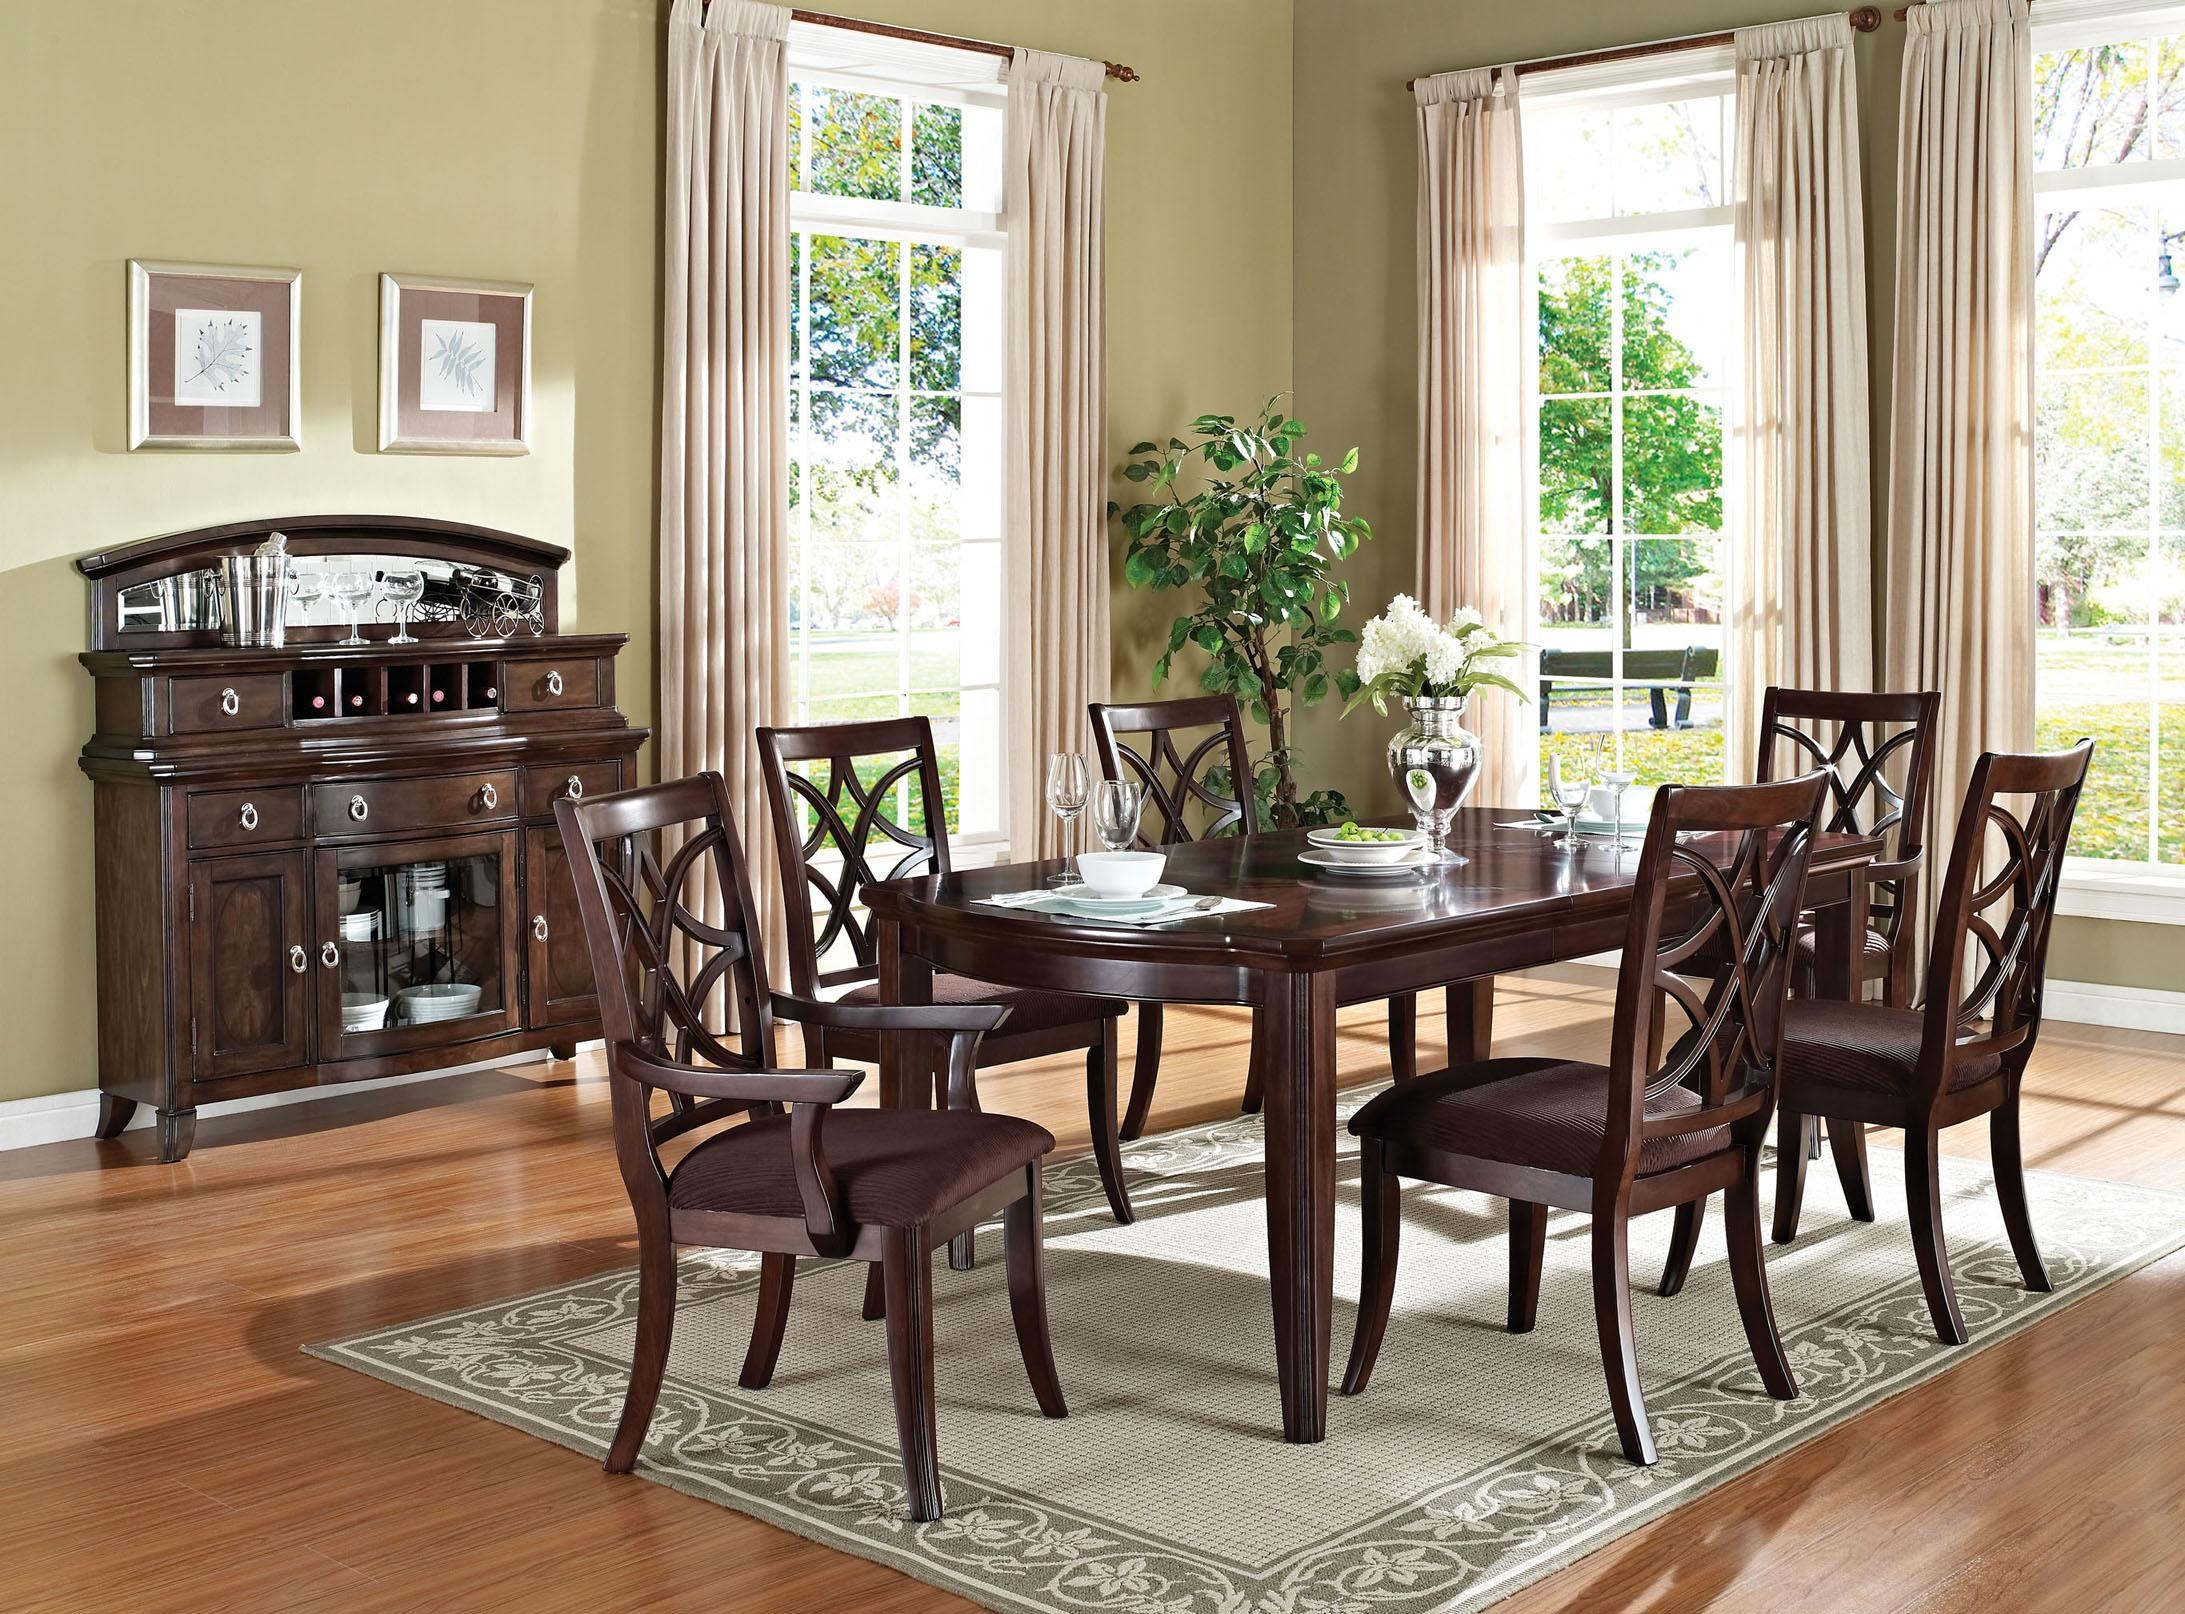 ... Acme Furniture KeenanTransitional Dining Table And Chair Set